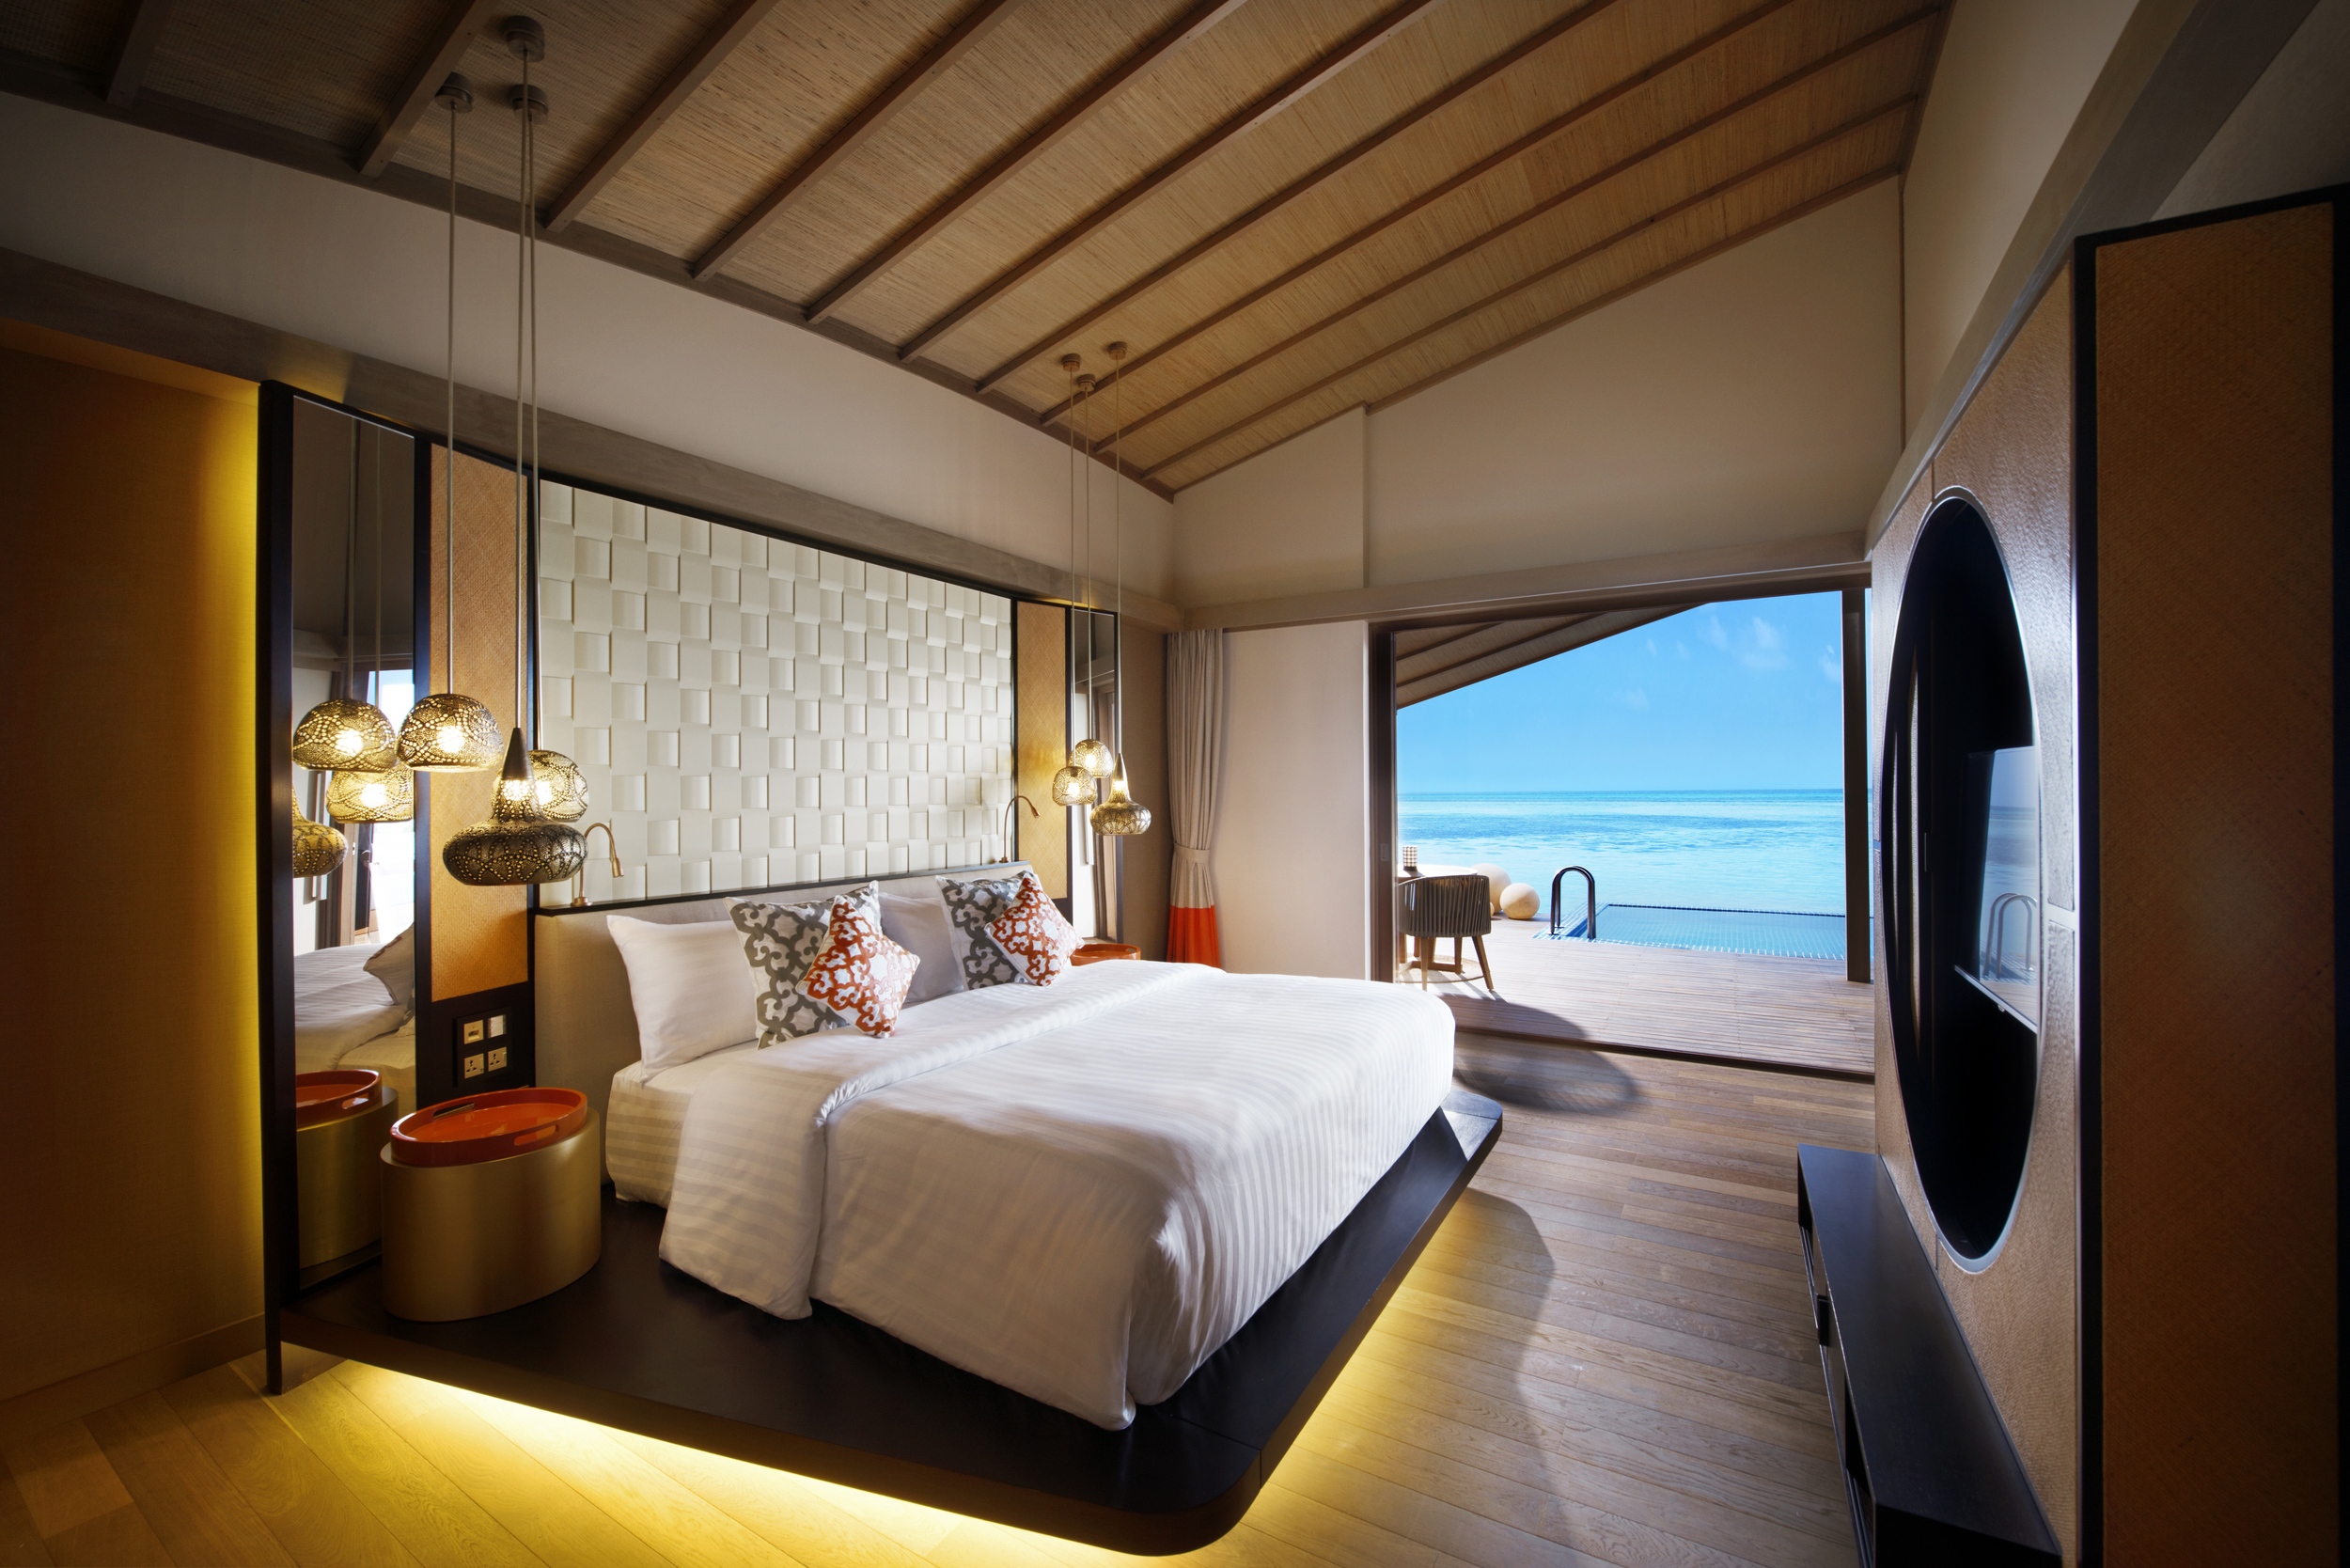 Day 1 - Sunset Lagoon Villa - Bed Room edit flat 03.jpg